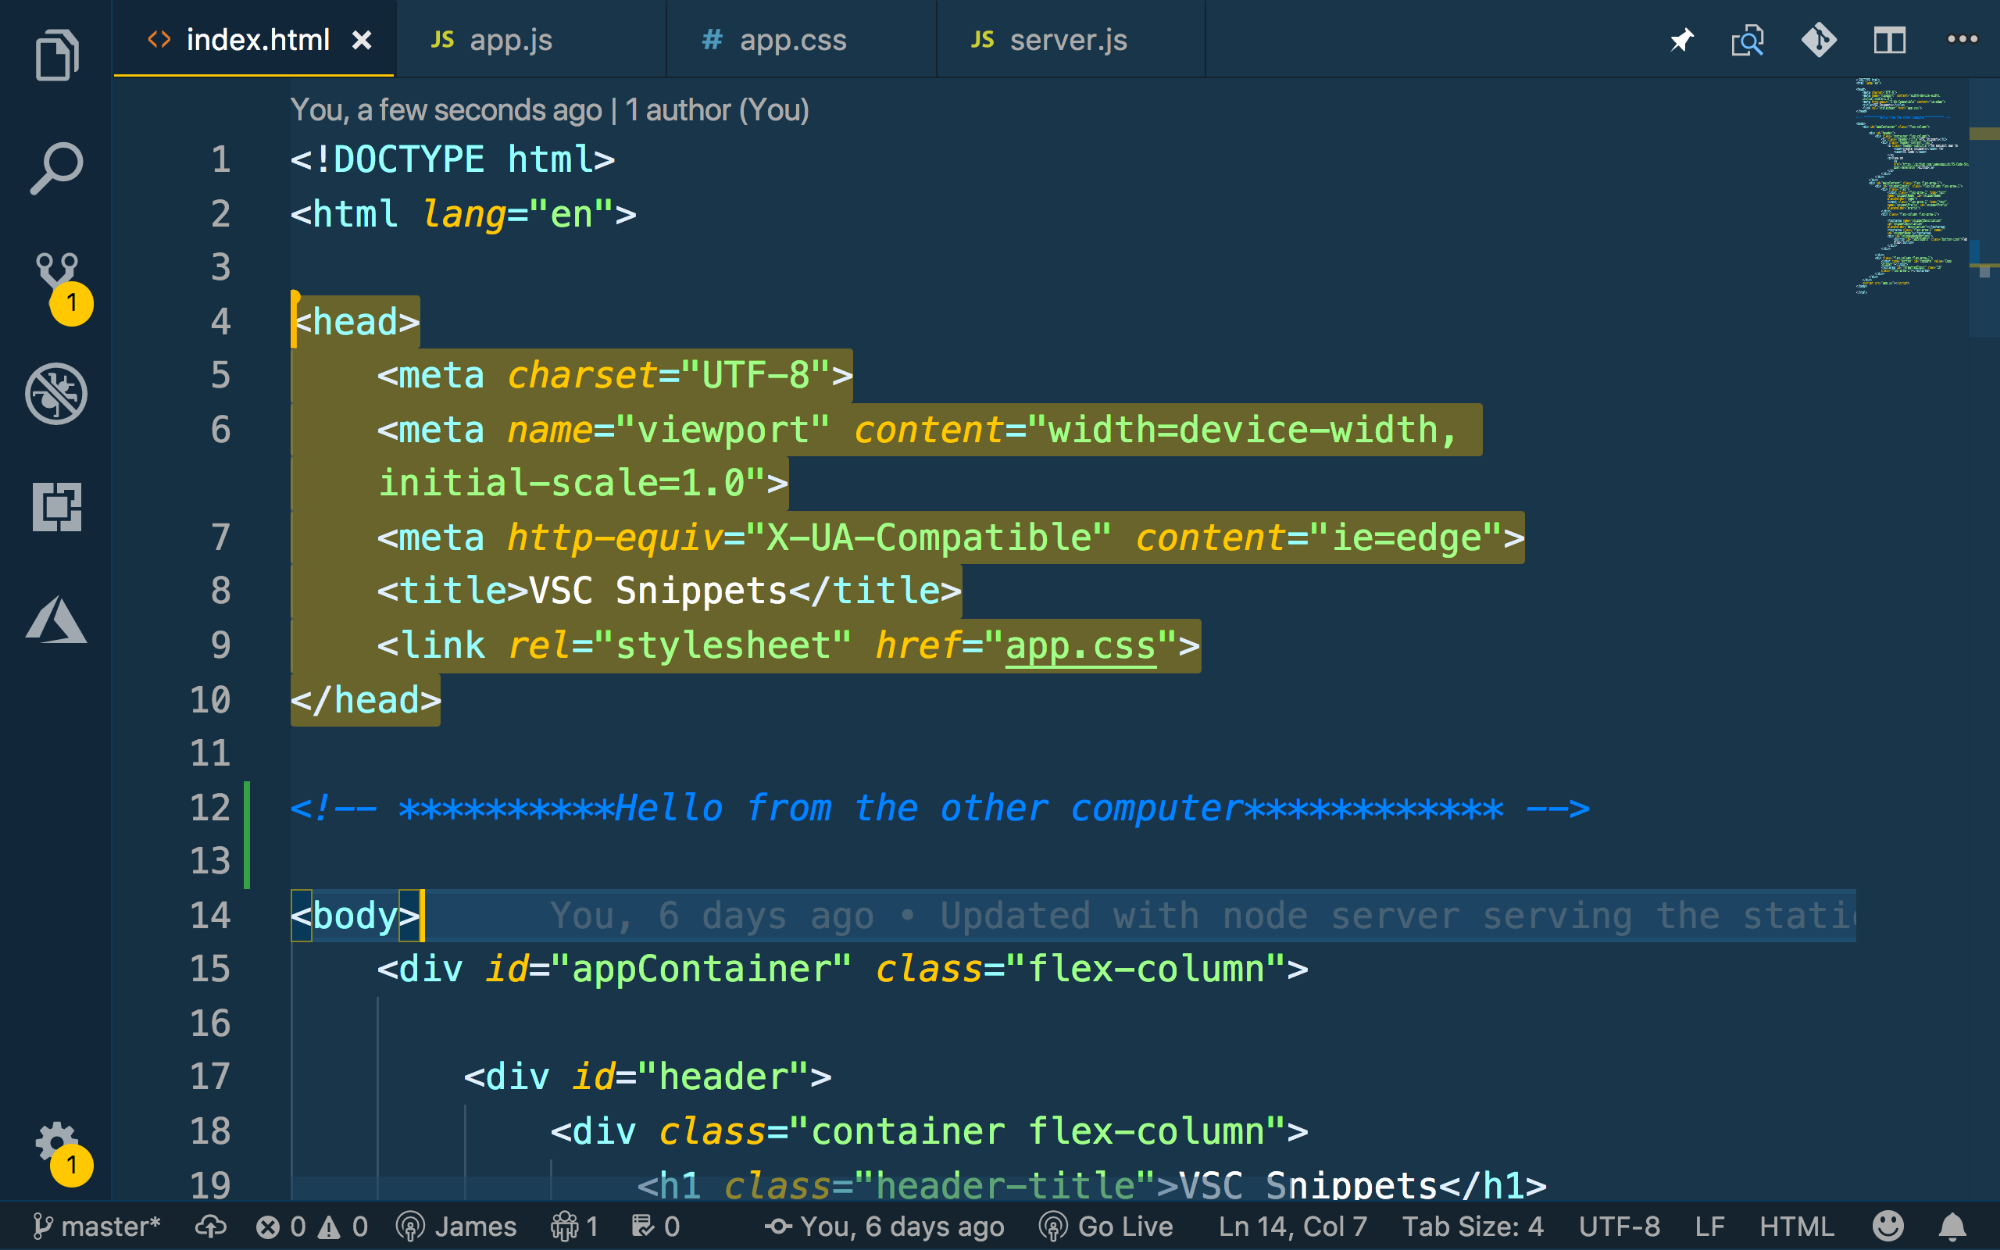 An example of highlighted lines of code visible to the other user